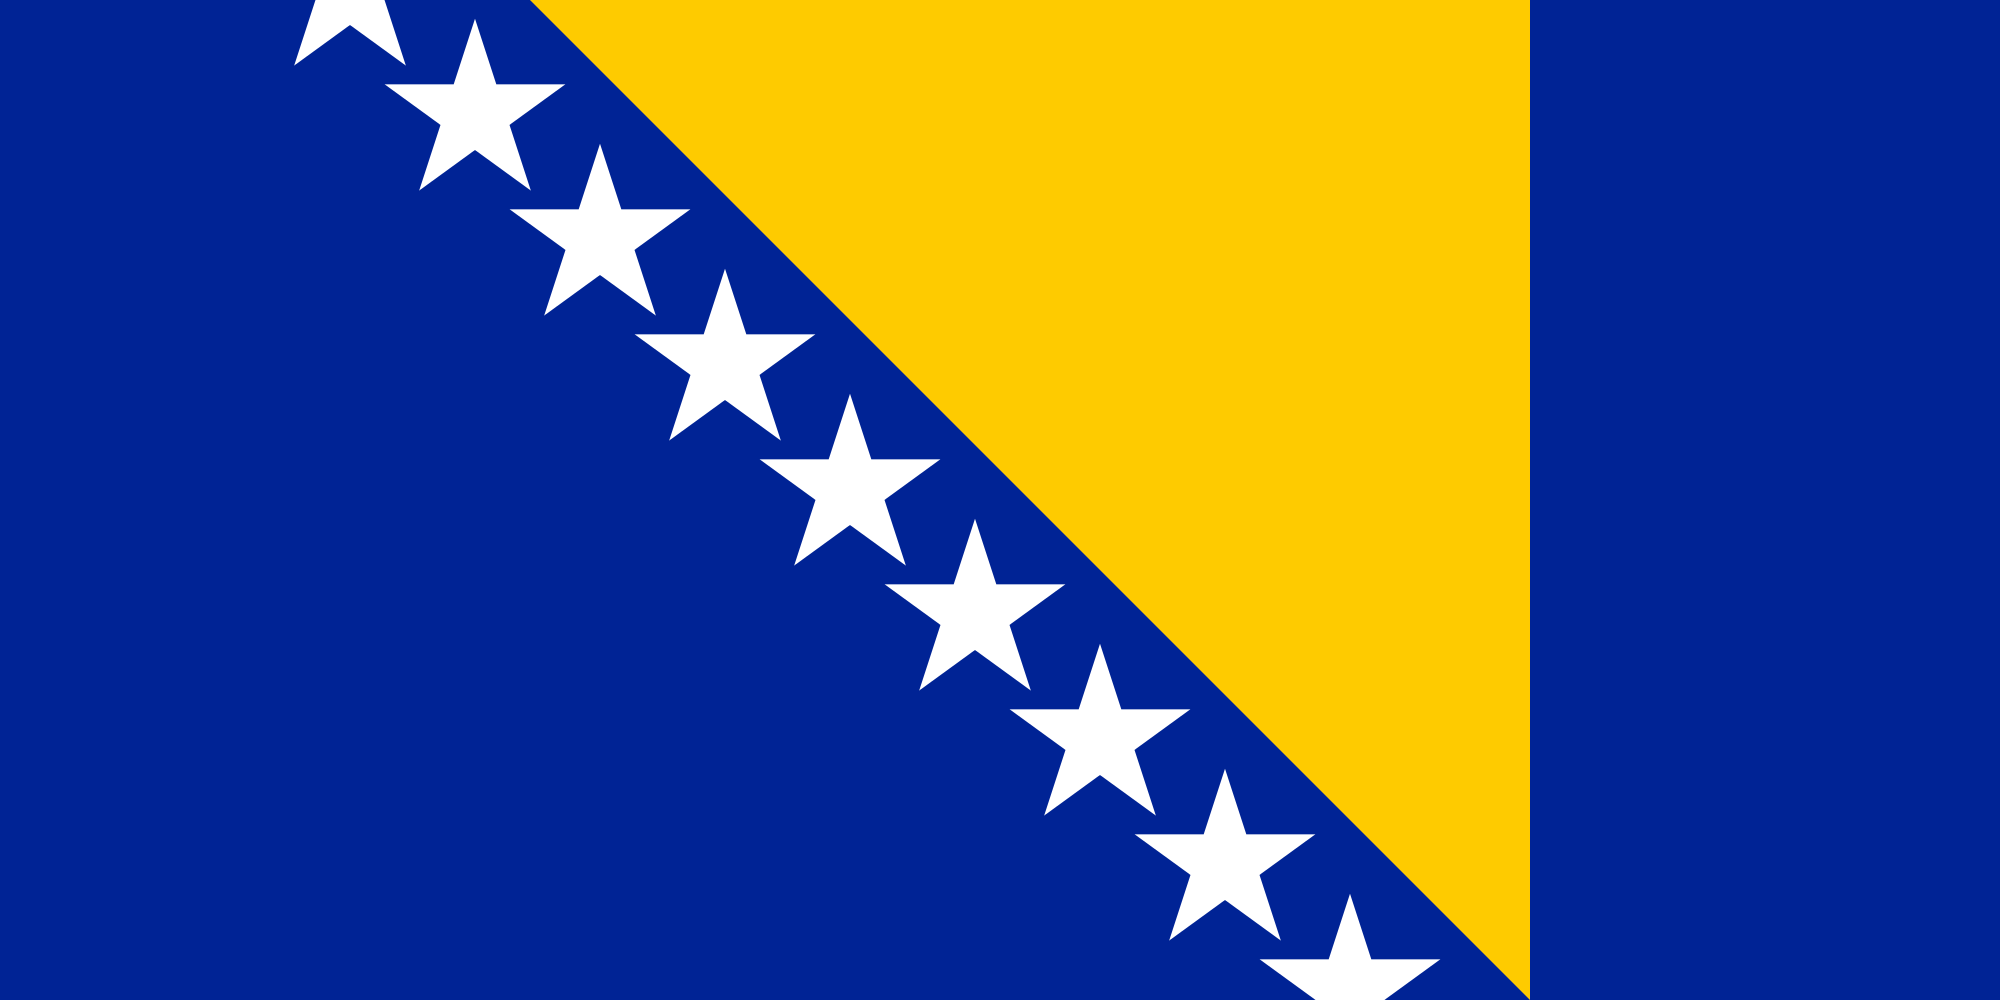 Bosnia And Herzegovina svg #20, Download drawings